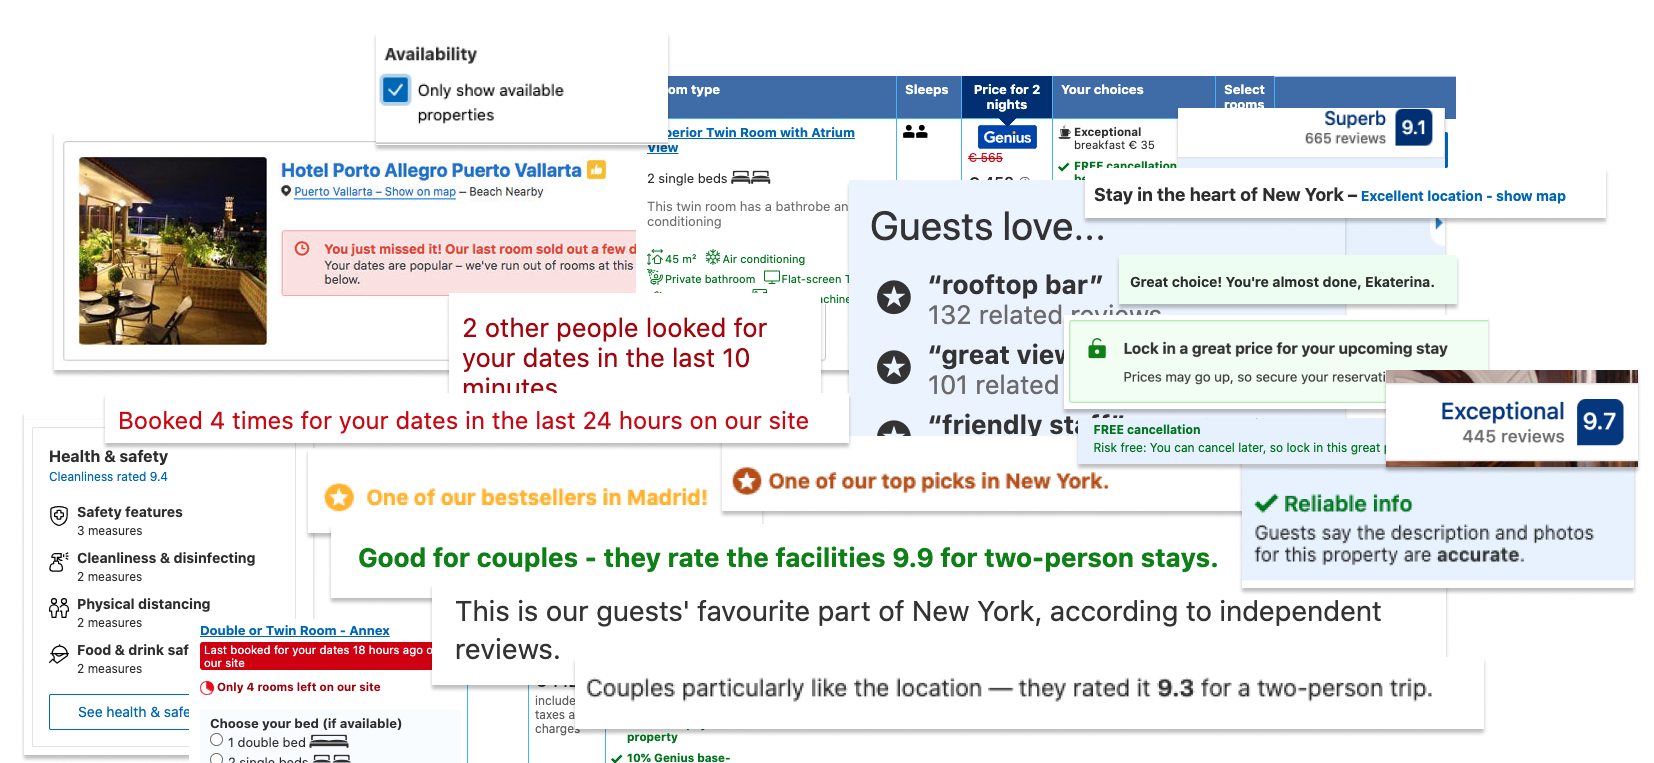 Examples of badges. messages, page elements - booking.com conversion optimization techniques to improve reservation rate